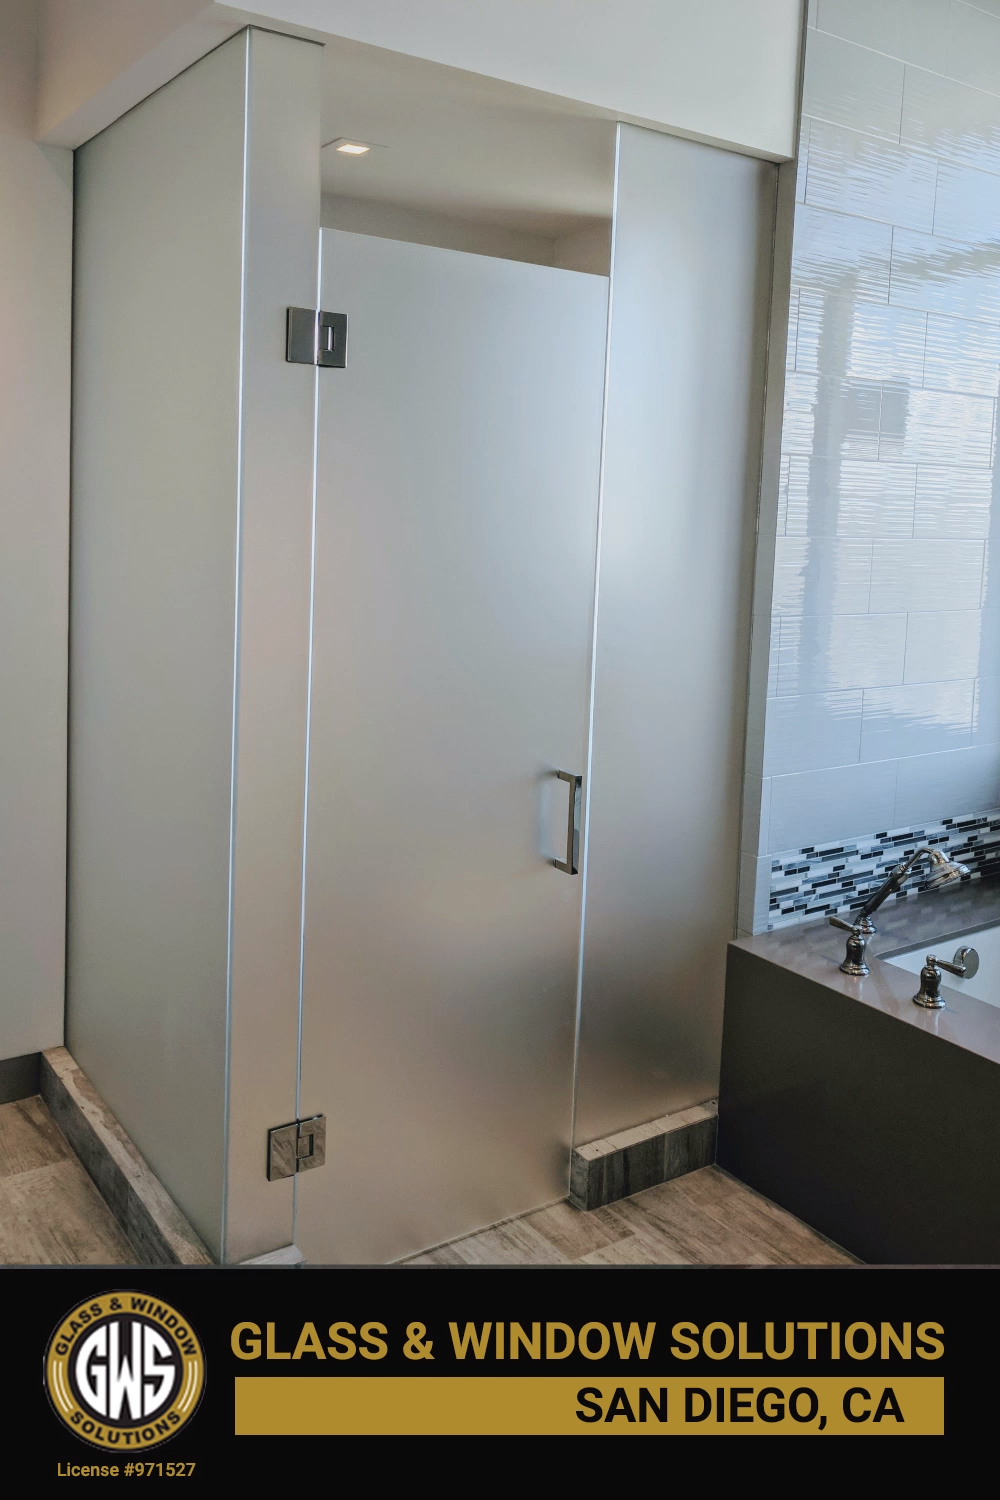 For All Your Glass Shower Needs In San Diego Visit Our Website Or Come See Our Beautiful Glass Video In 2020 Bathroom Decor Framed Shower Enclosures Glass Shower Enclosures